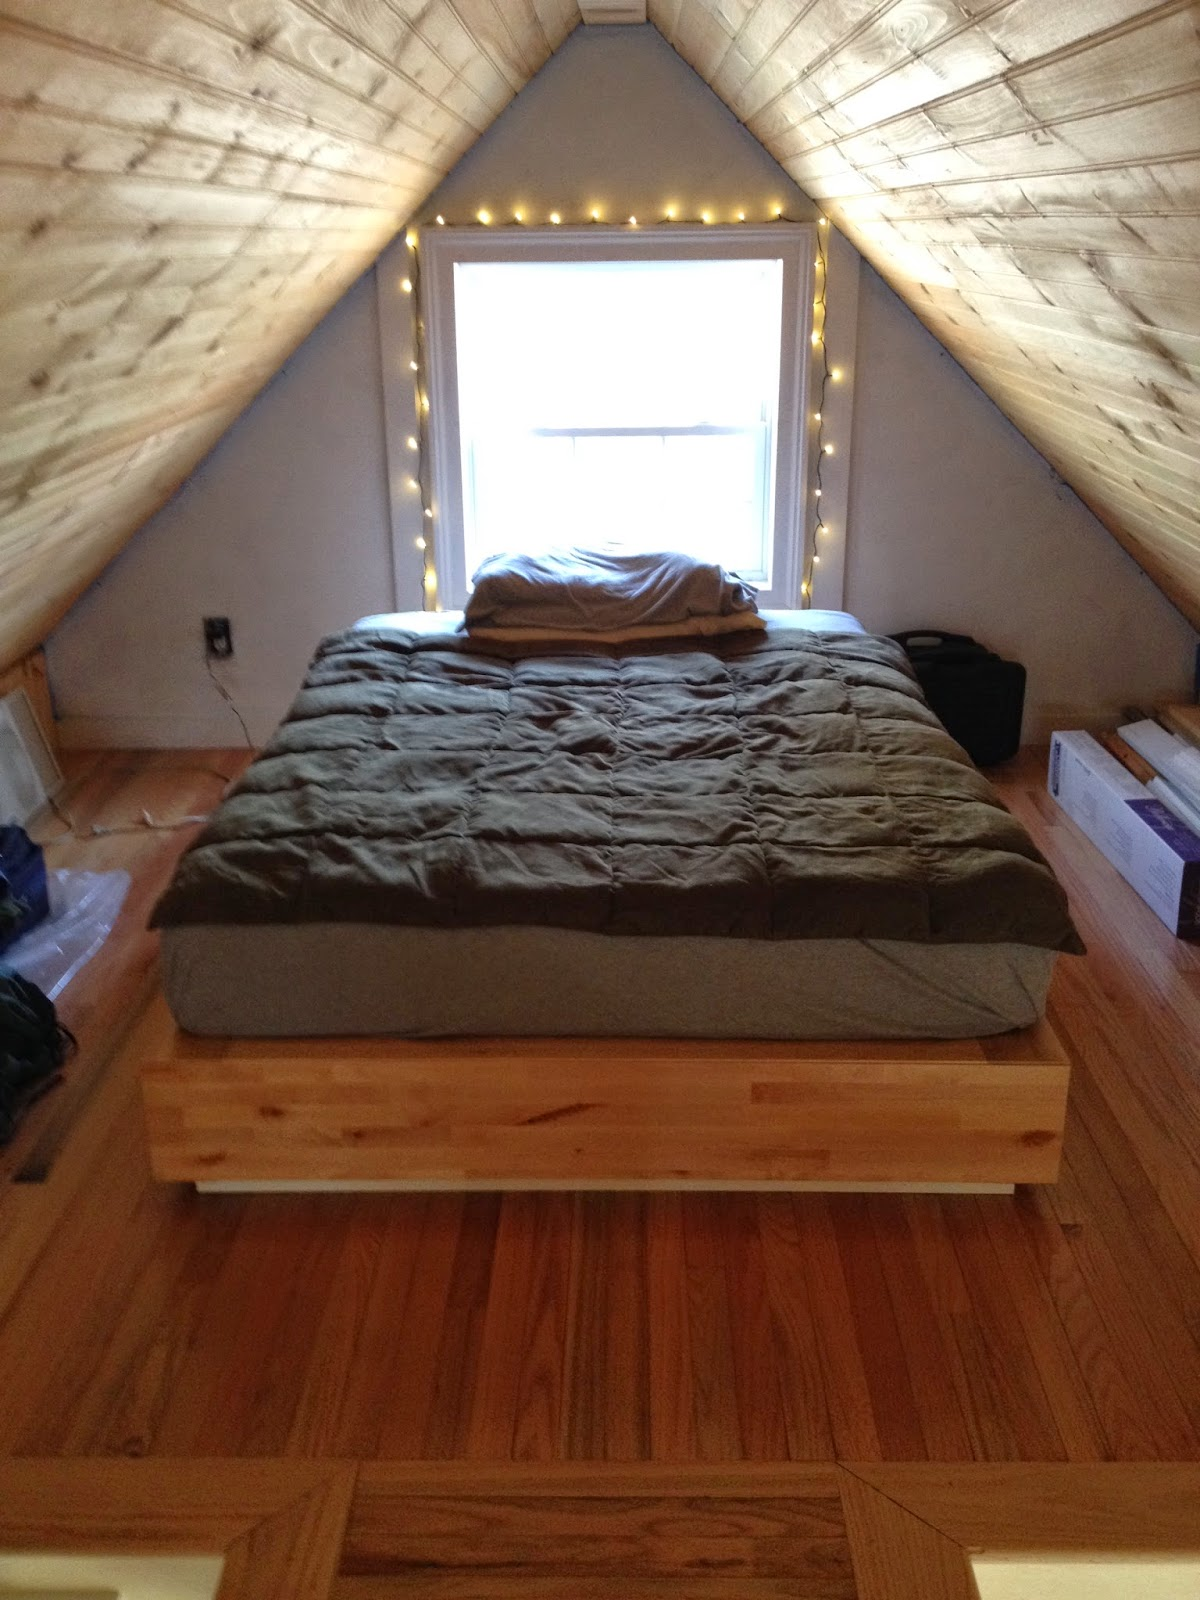 The New England Cabin Project